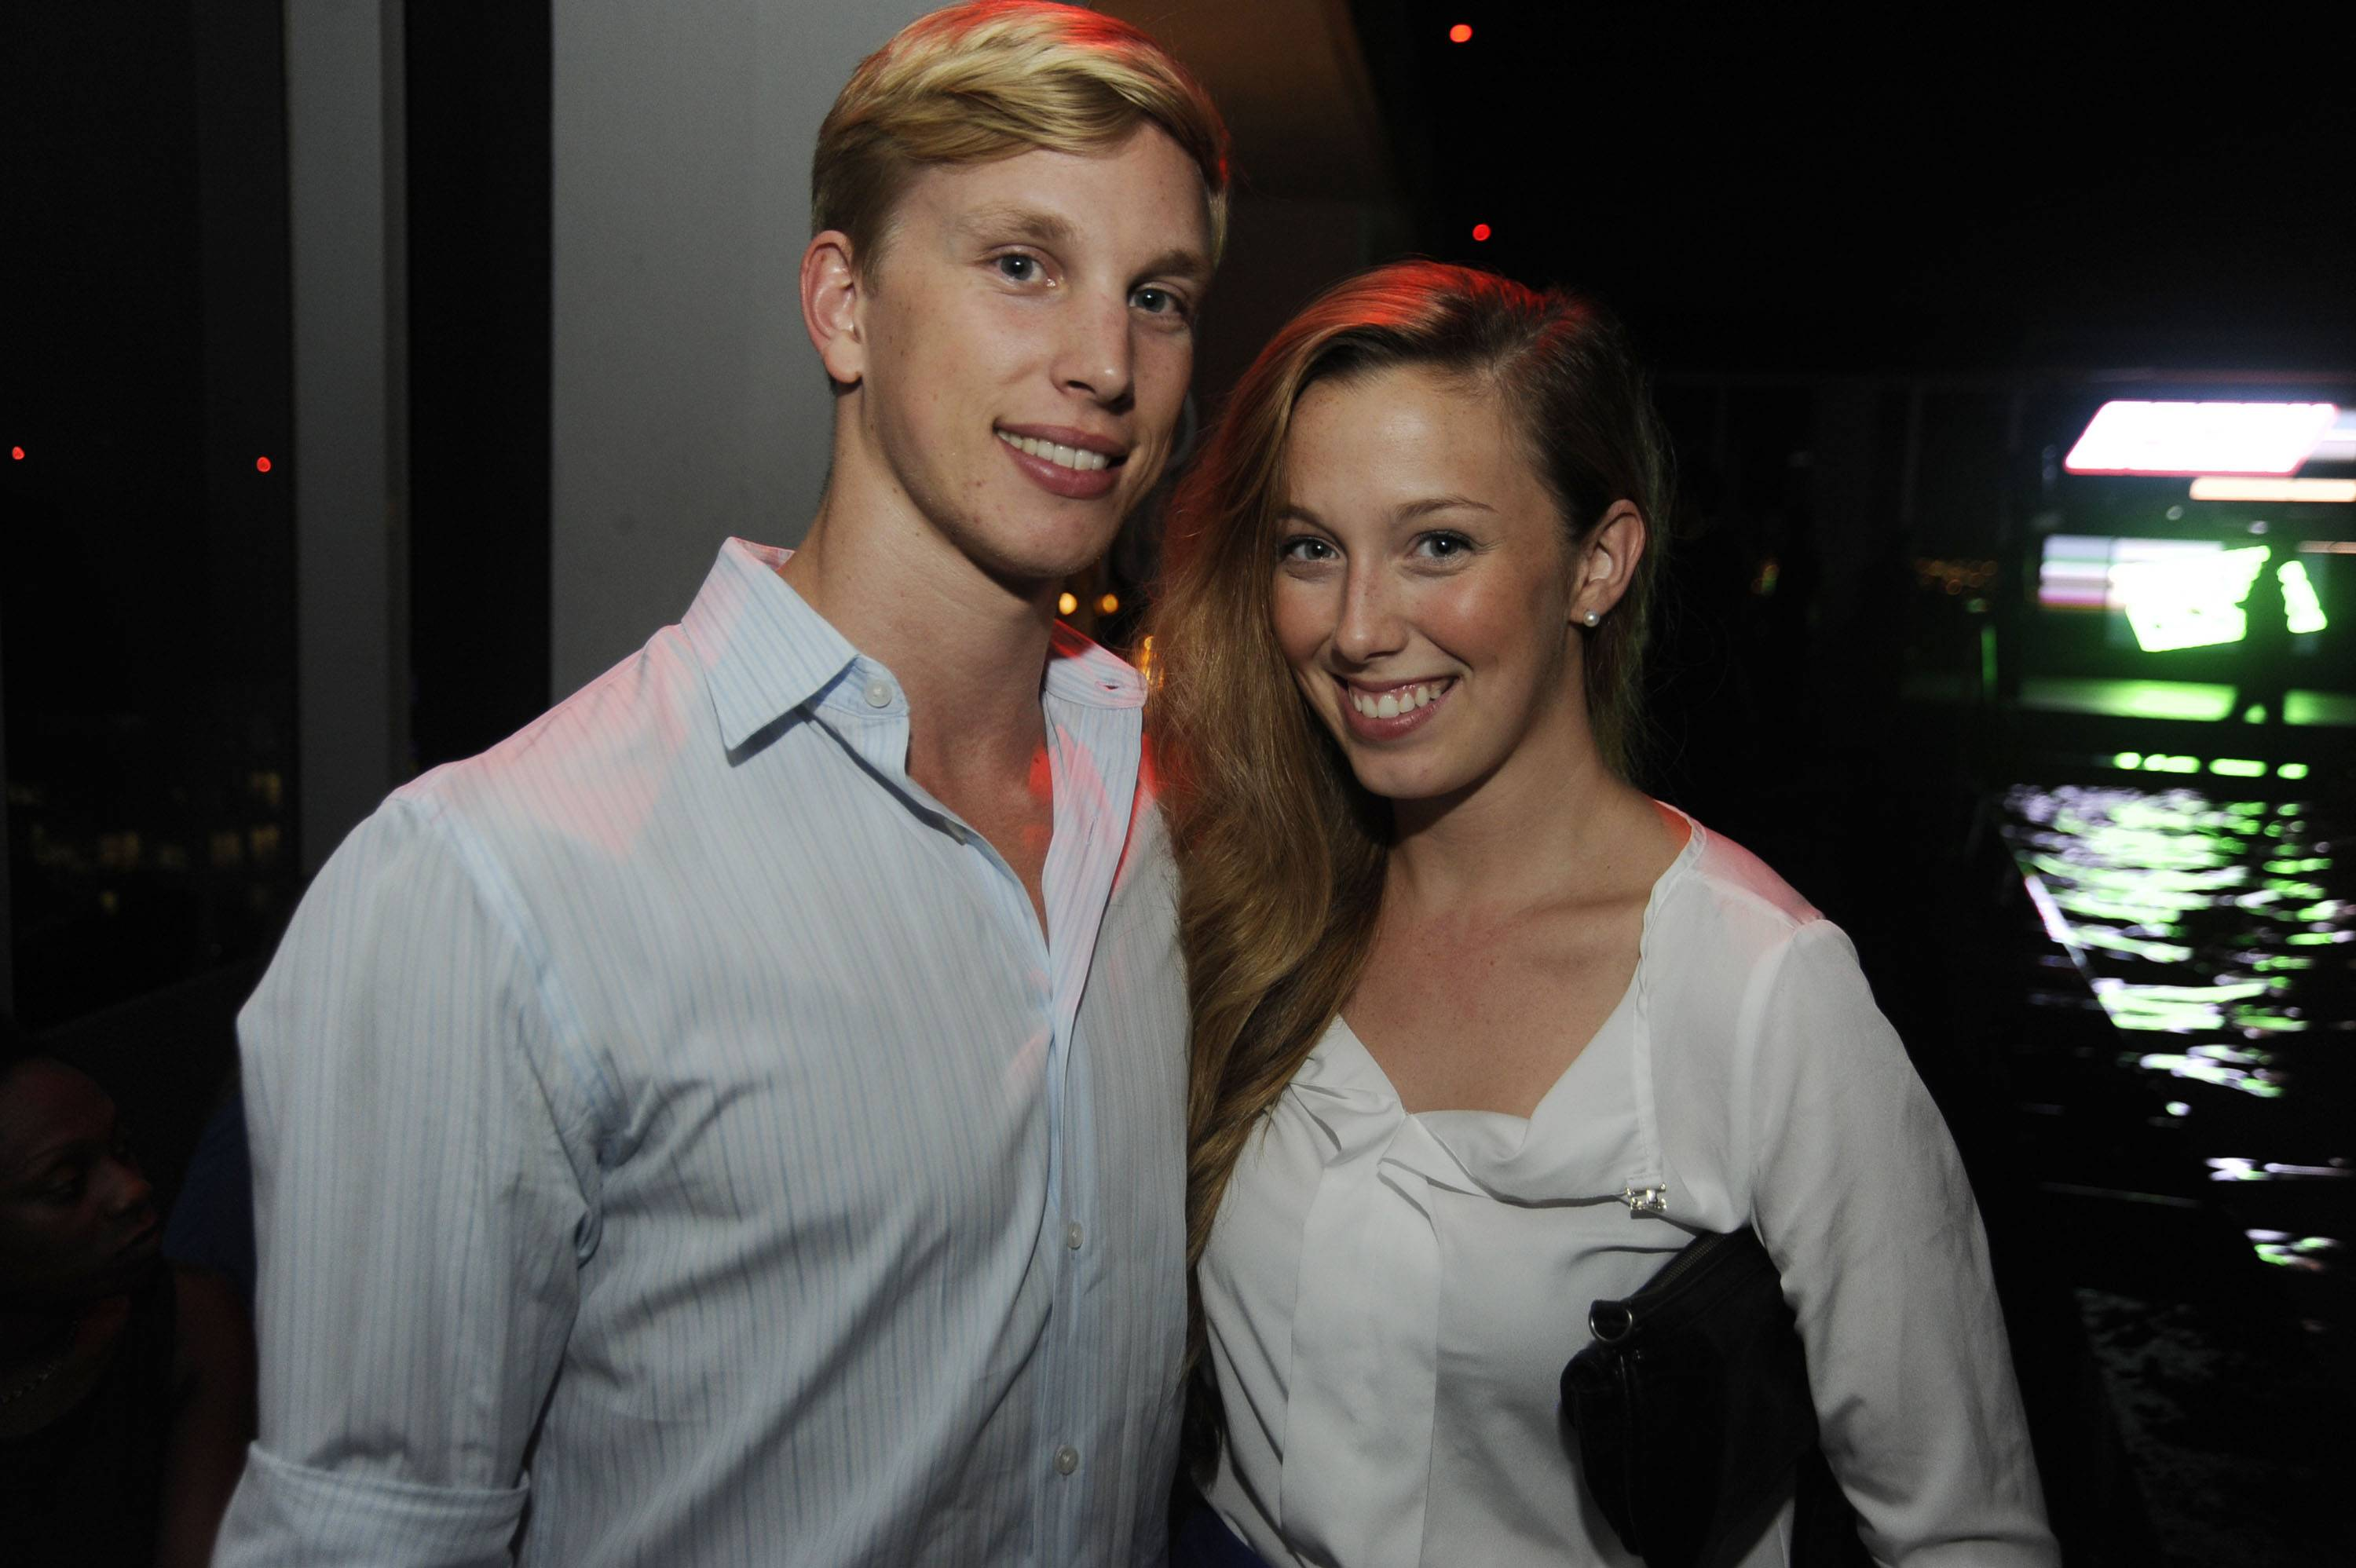 Miami City Ballet dancers Chase Swatosh & Suzette Logue at the Adrienne Arsht Center's Green Room Society season kick-off event